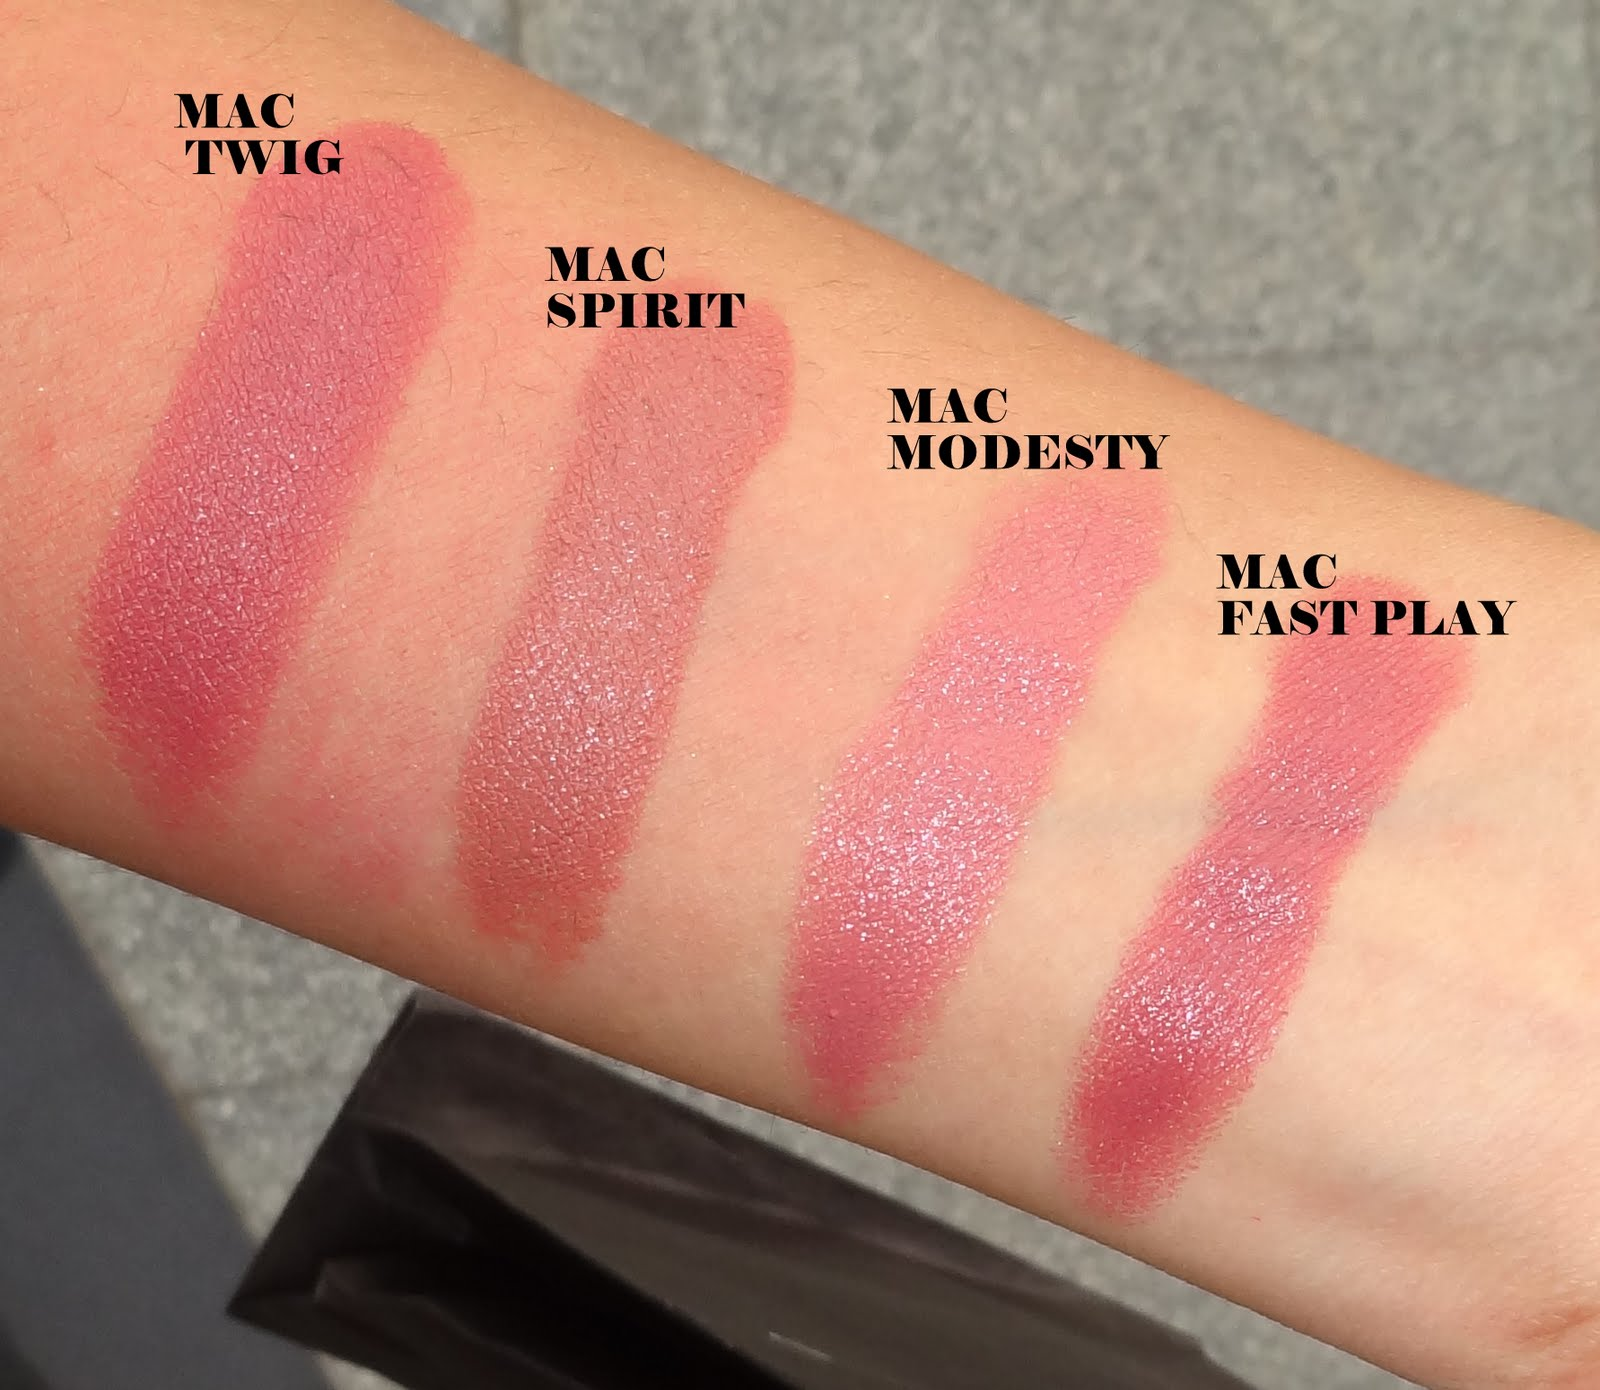 Mac Lipstick Swatches: Part 2